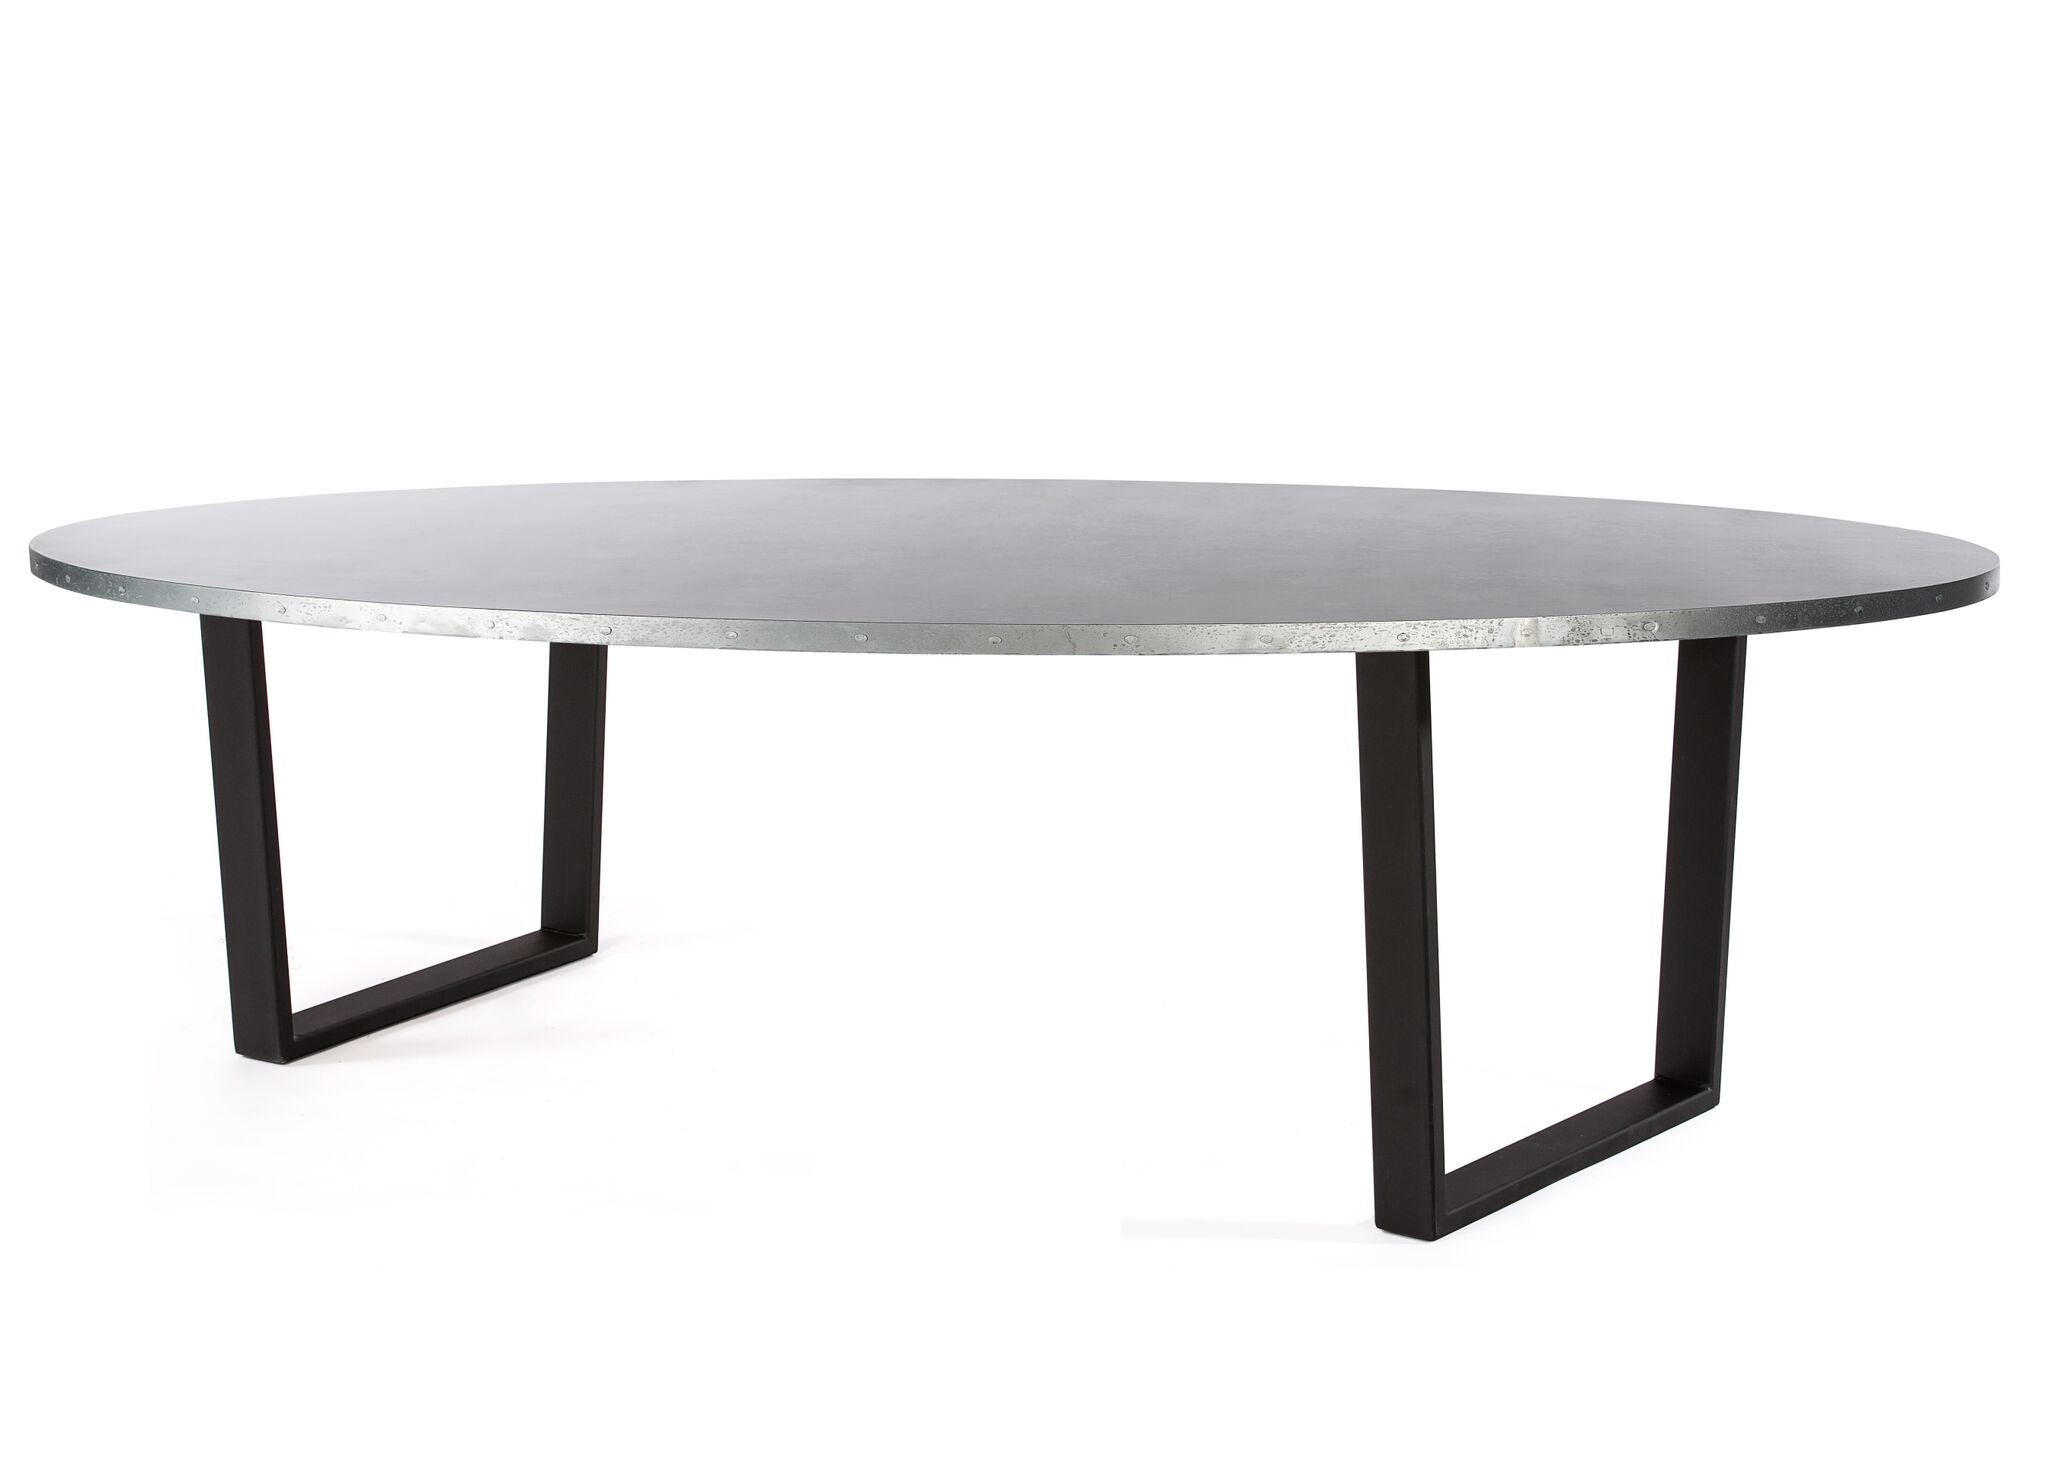 "Zinc Oval Tables | Trenton Table | CLASSIC | Black on Steel | 72""L 39""W 30""H 